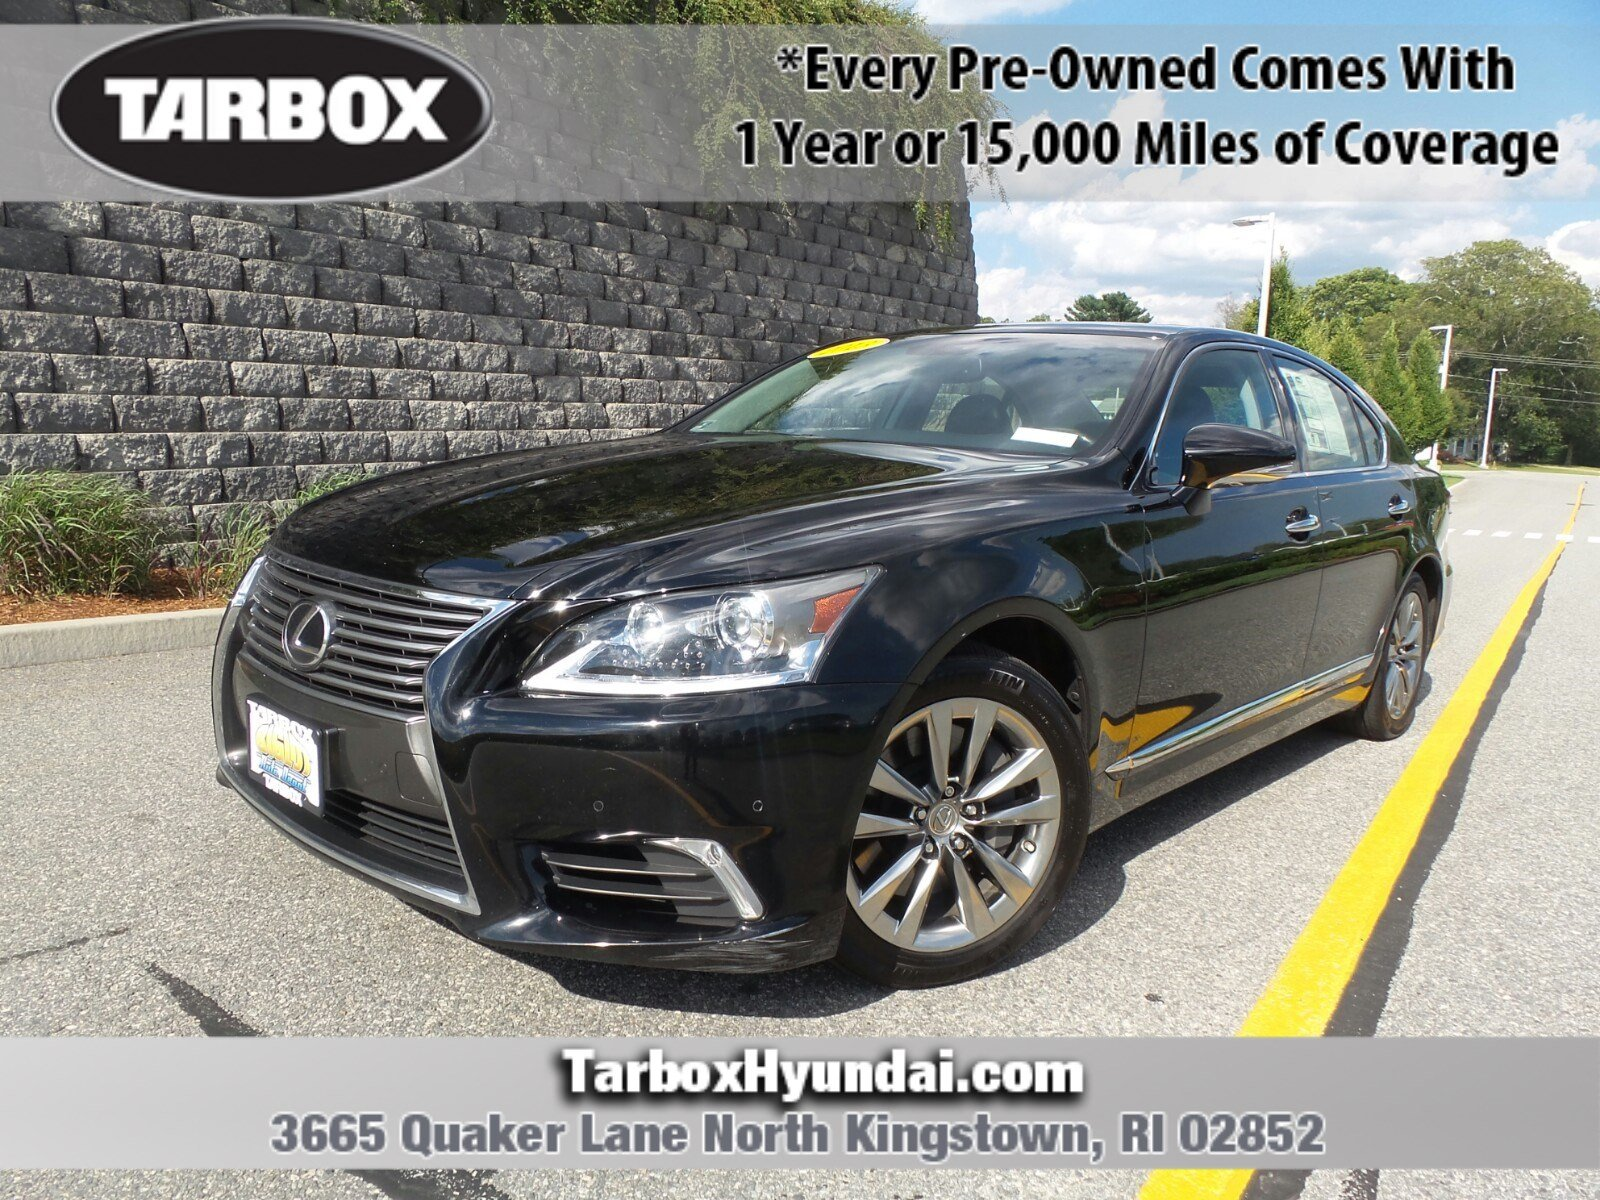 Lexus Ls 460 For Sale ▷ Used Cars Buysellsearch